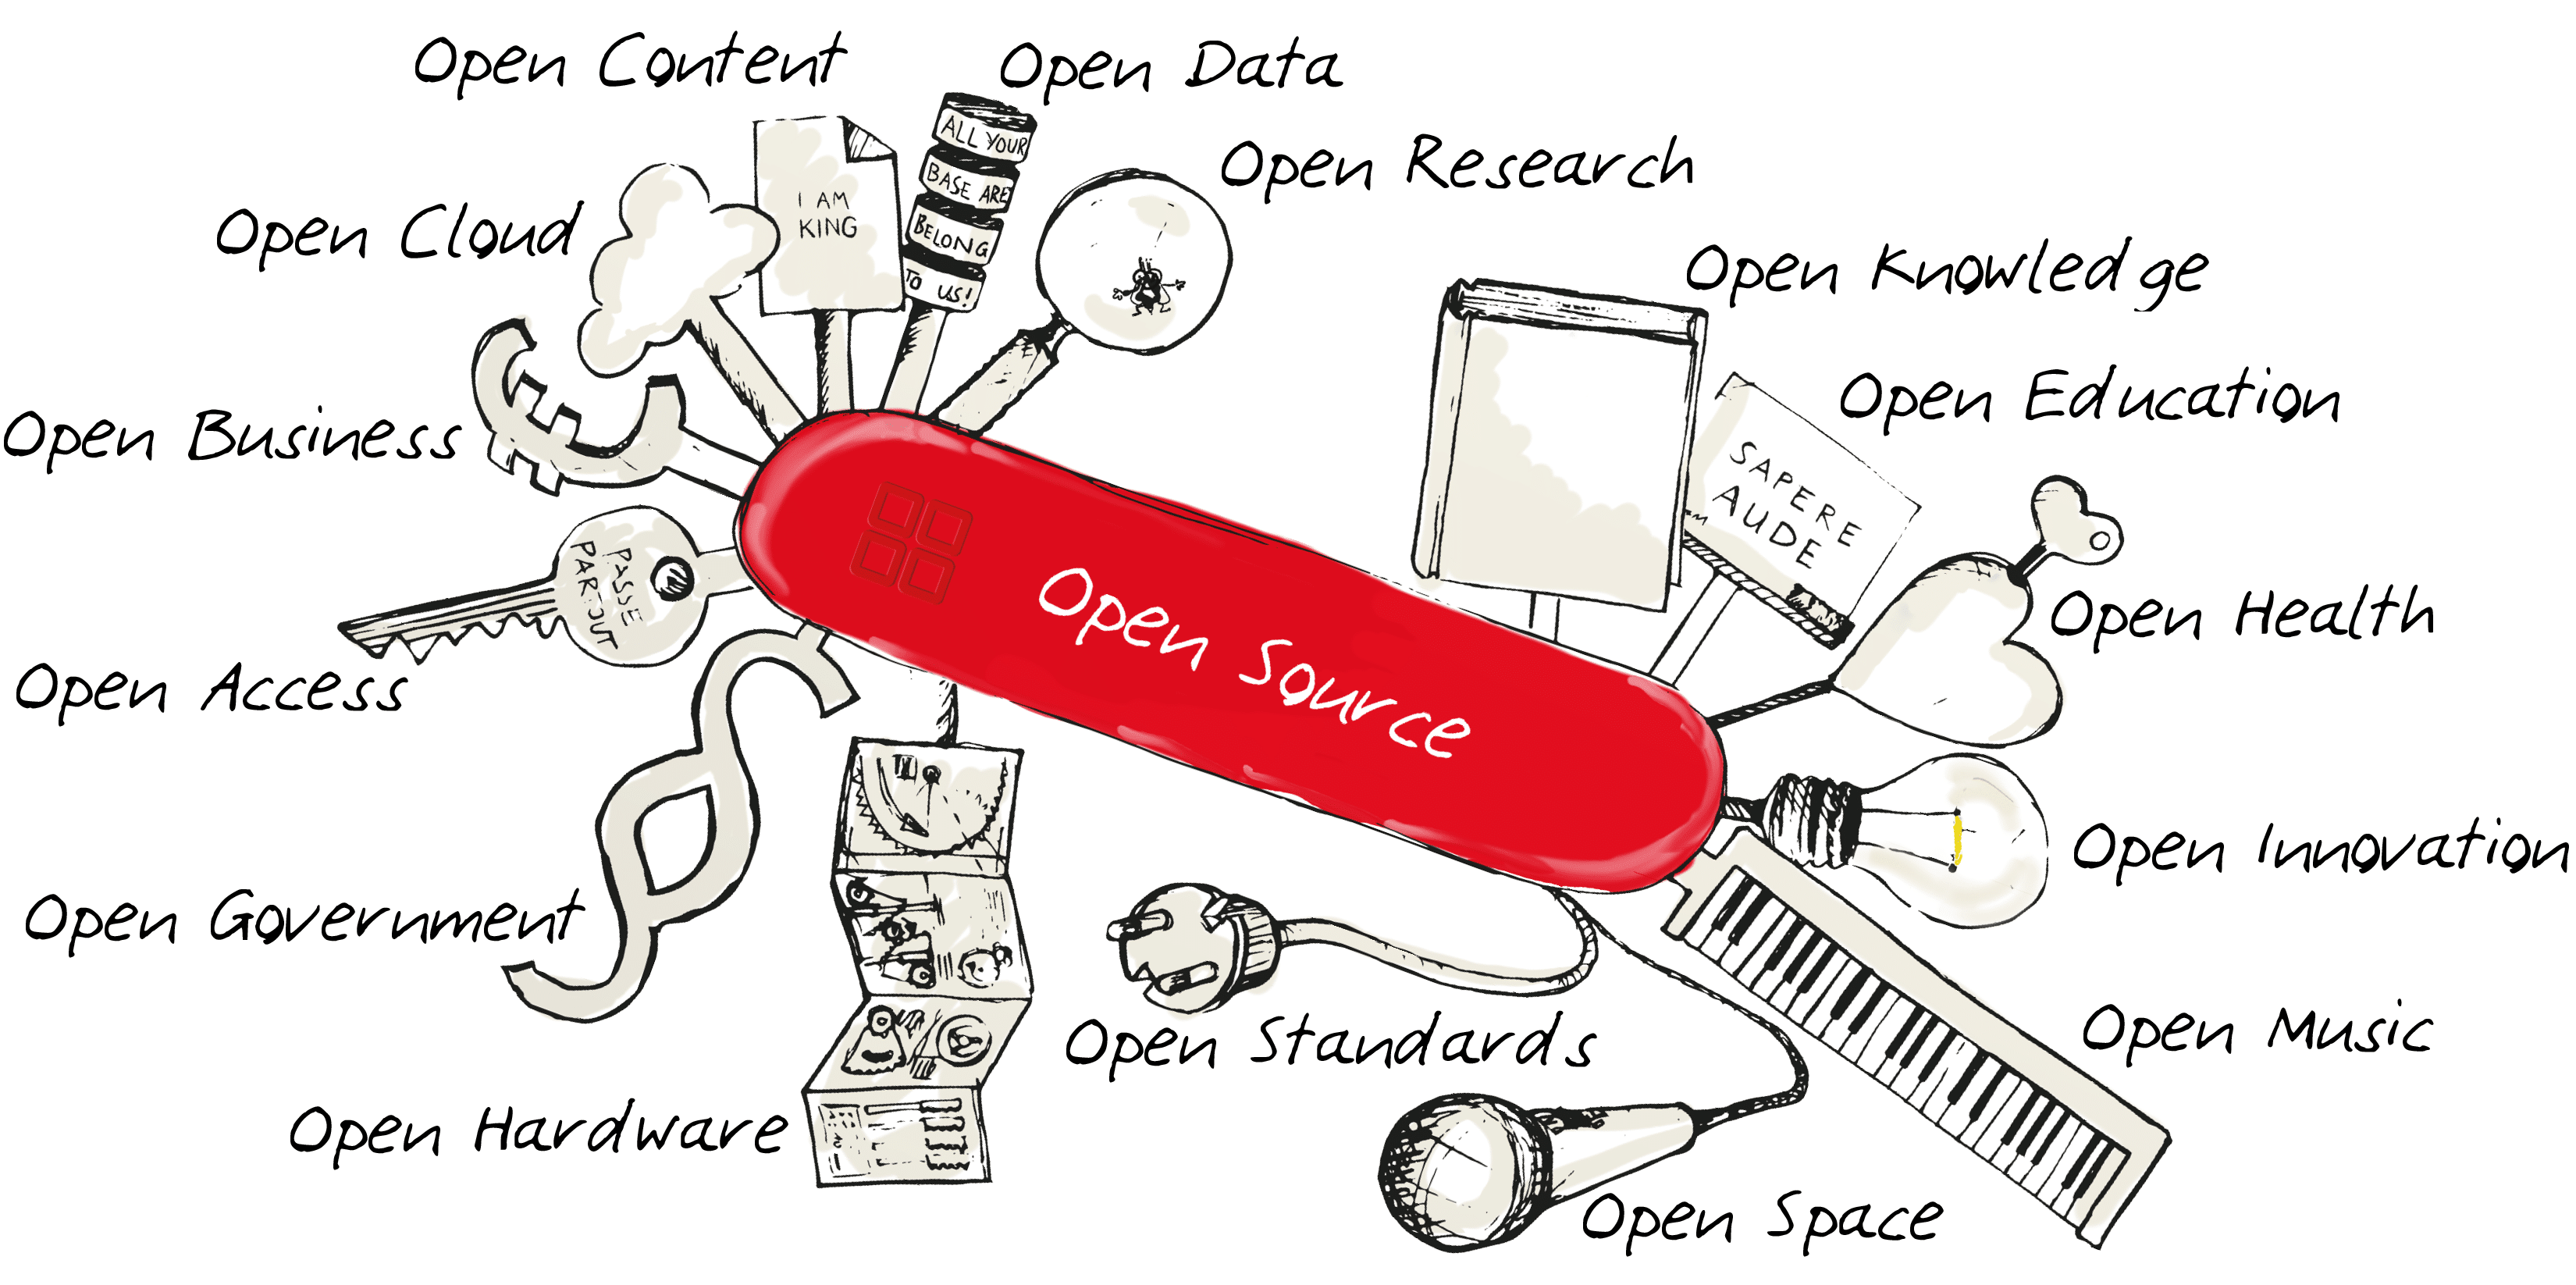 Open Source Software Definition